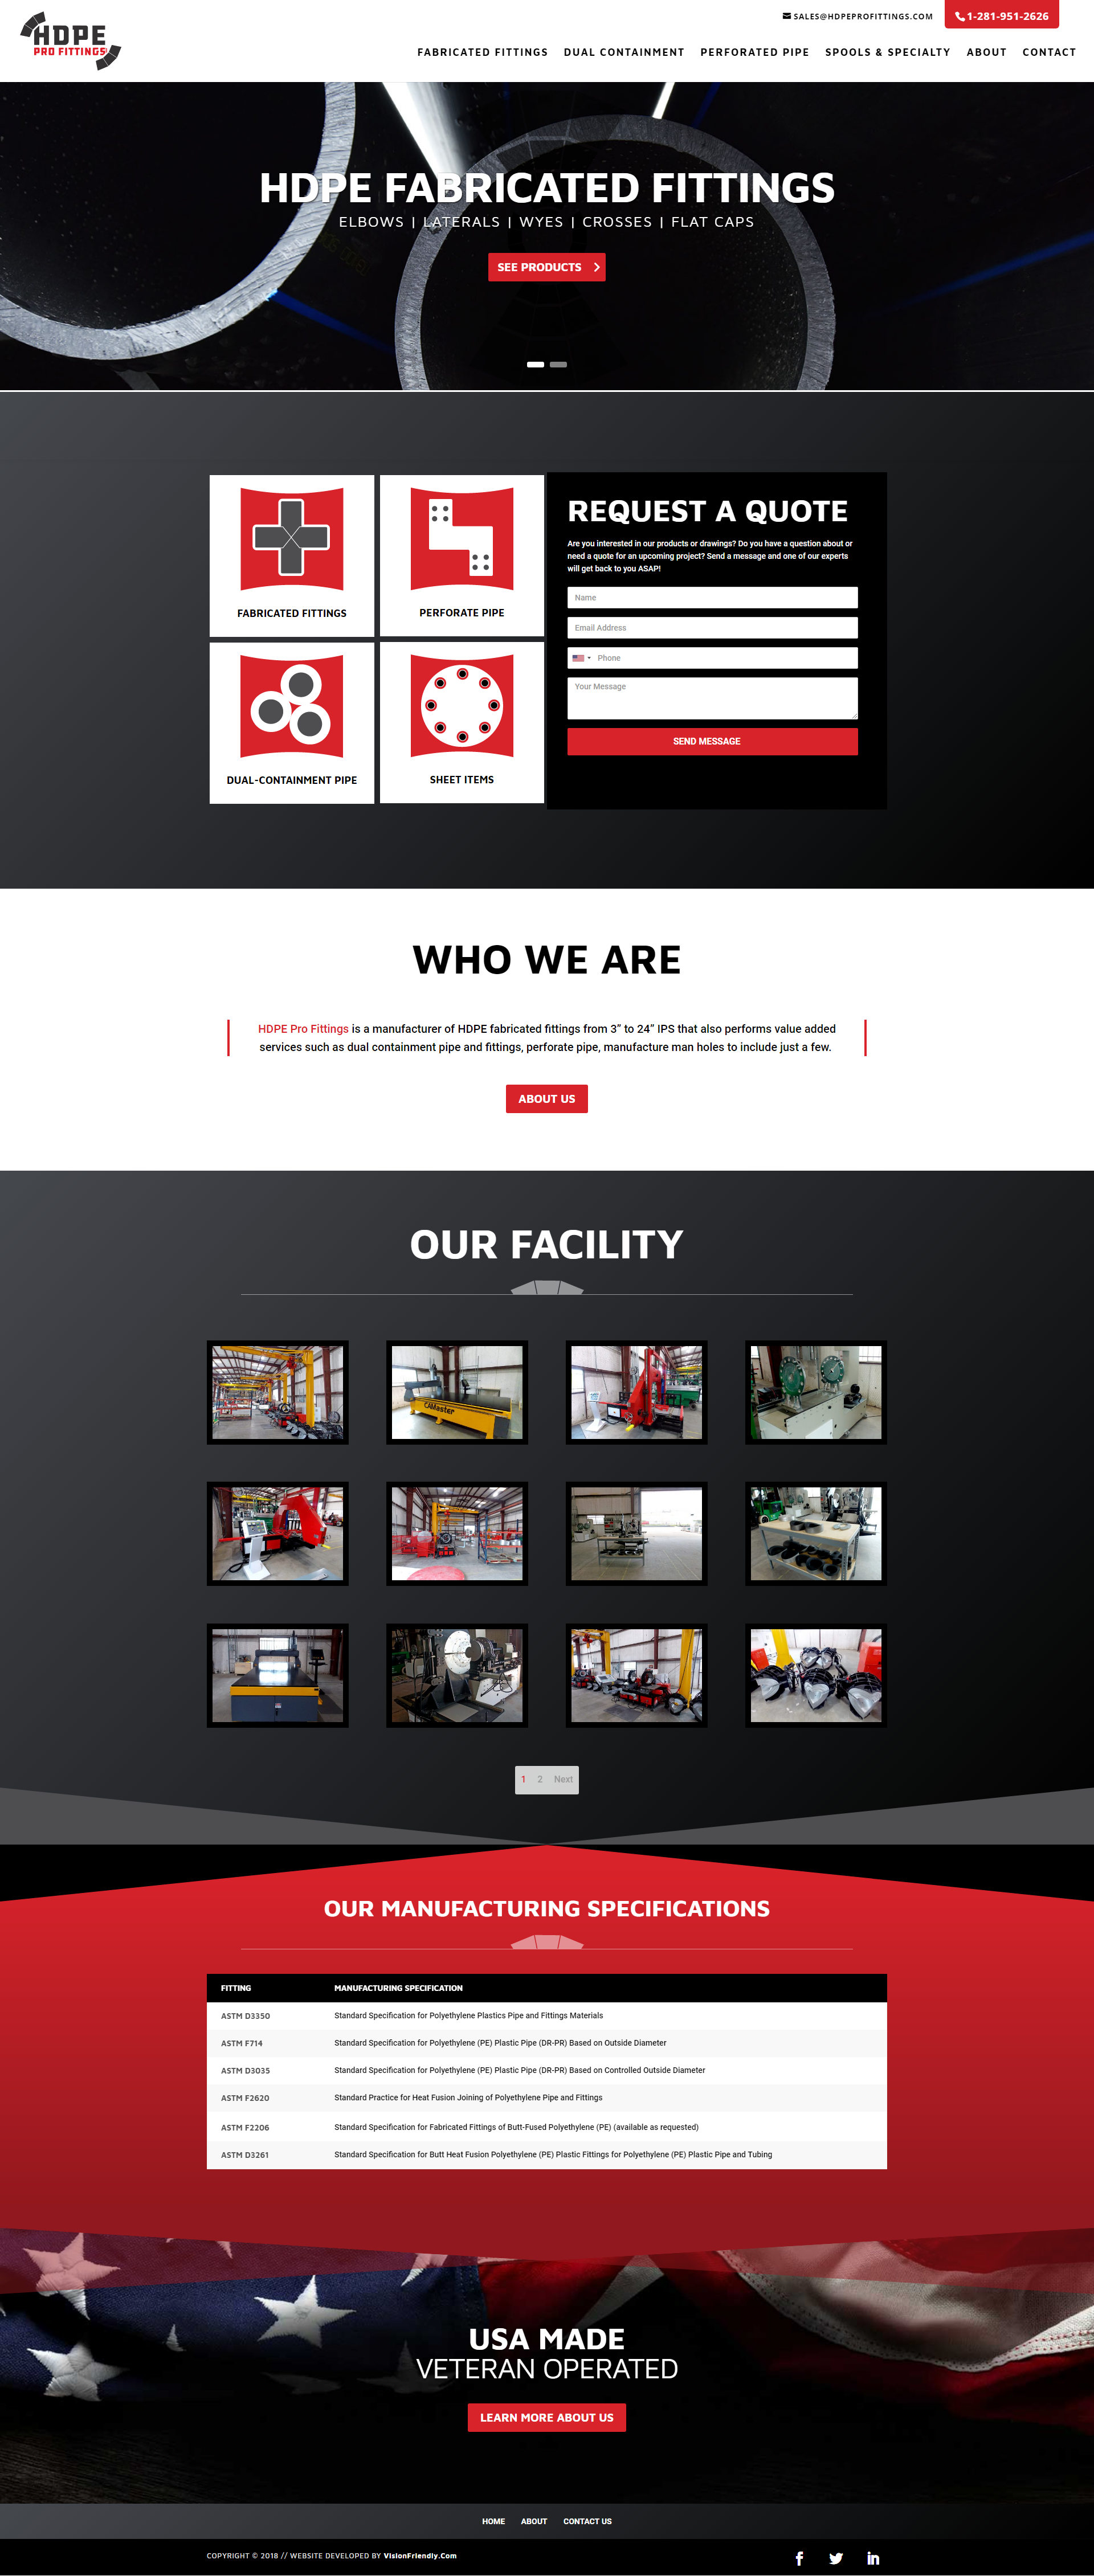 Website For Hdpe Profittings By Visionfriendly Com Fullwidth Responsive Industrial Webdesign Webdevelopment Web Design Responsive Design Website Design